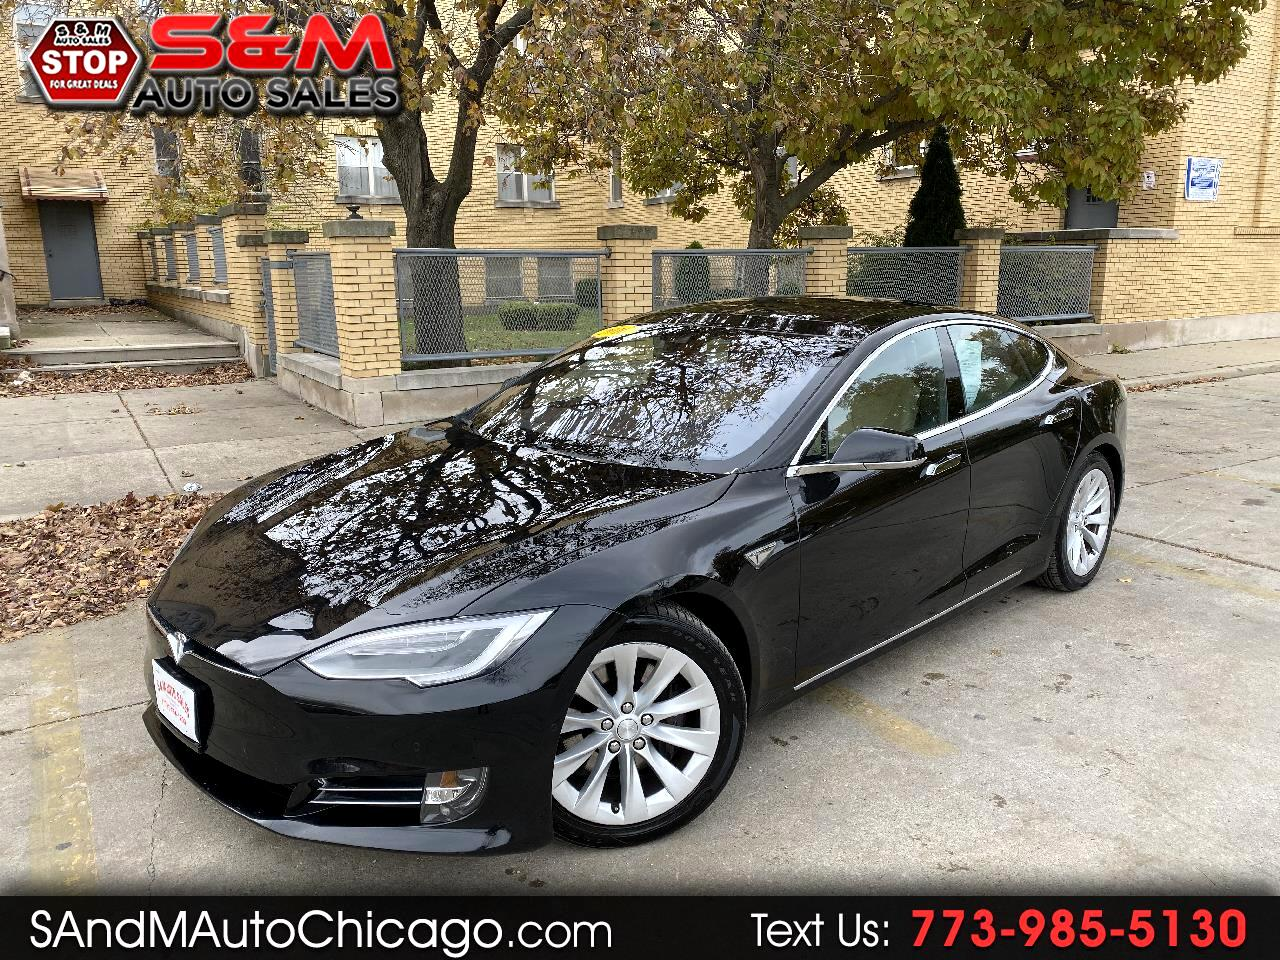 Tesla Model S 2016.5 4dr Sdn AWD 60D 2016